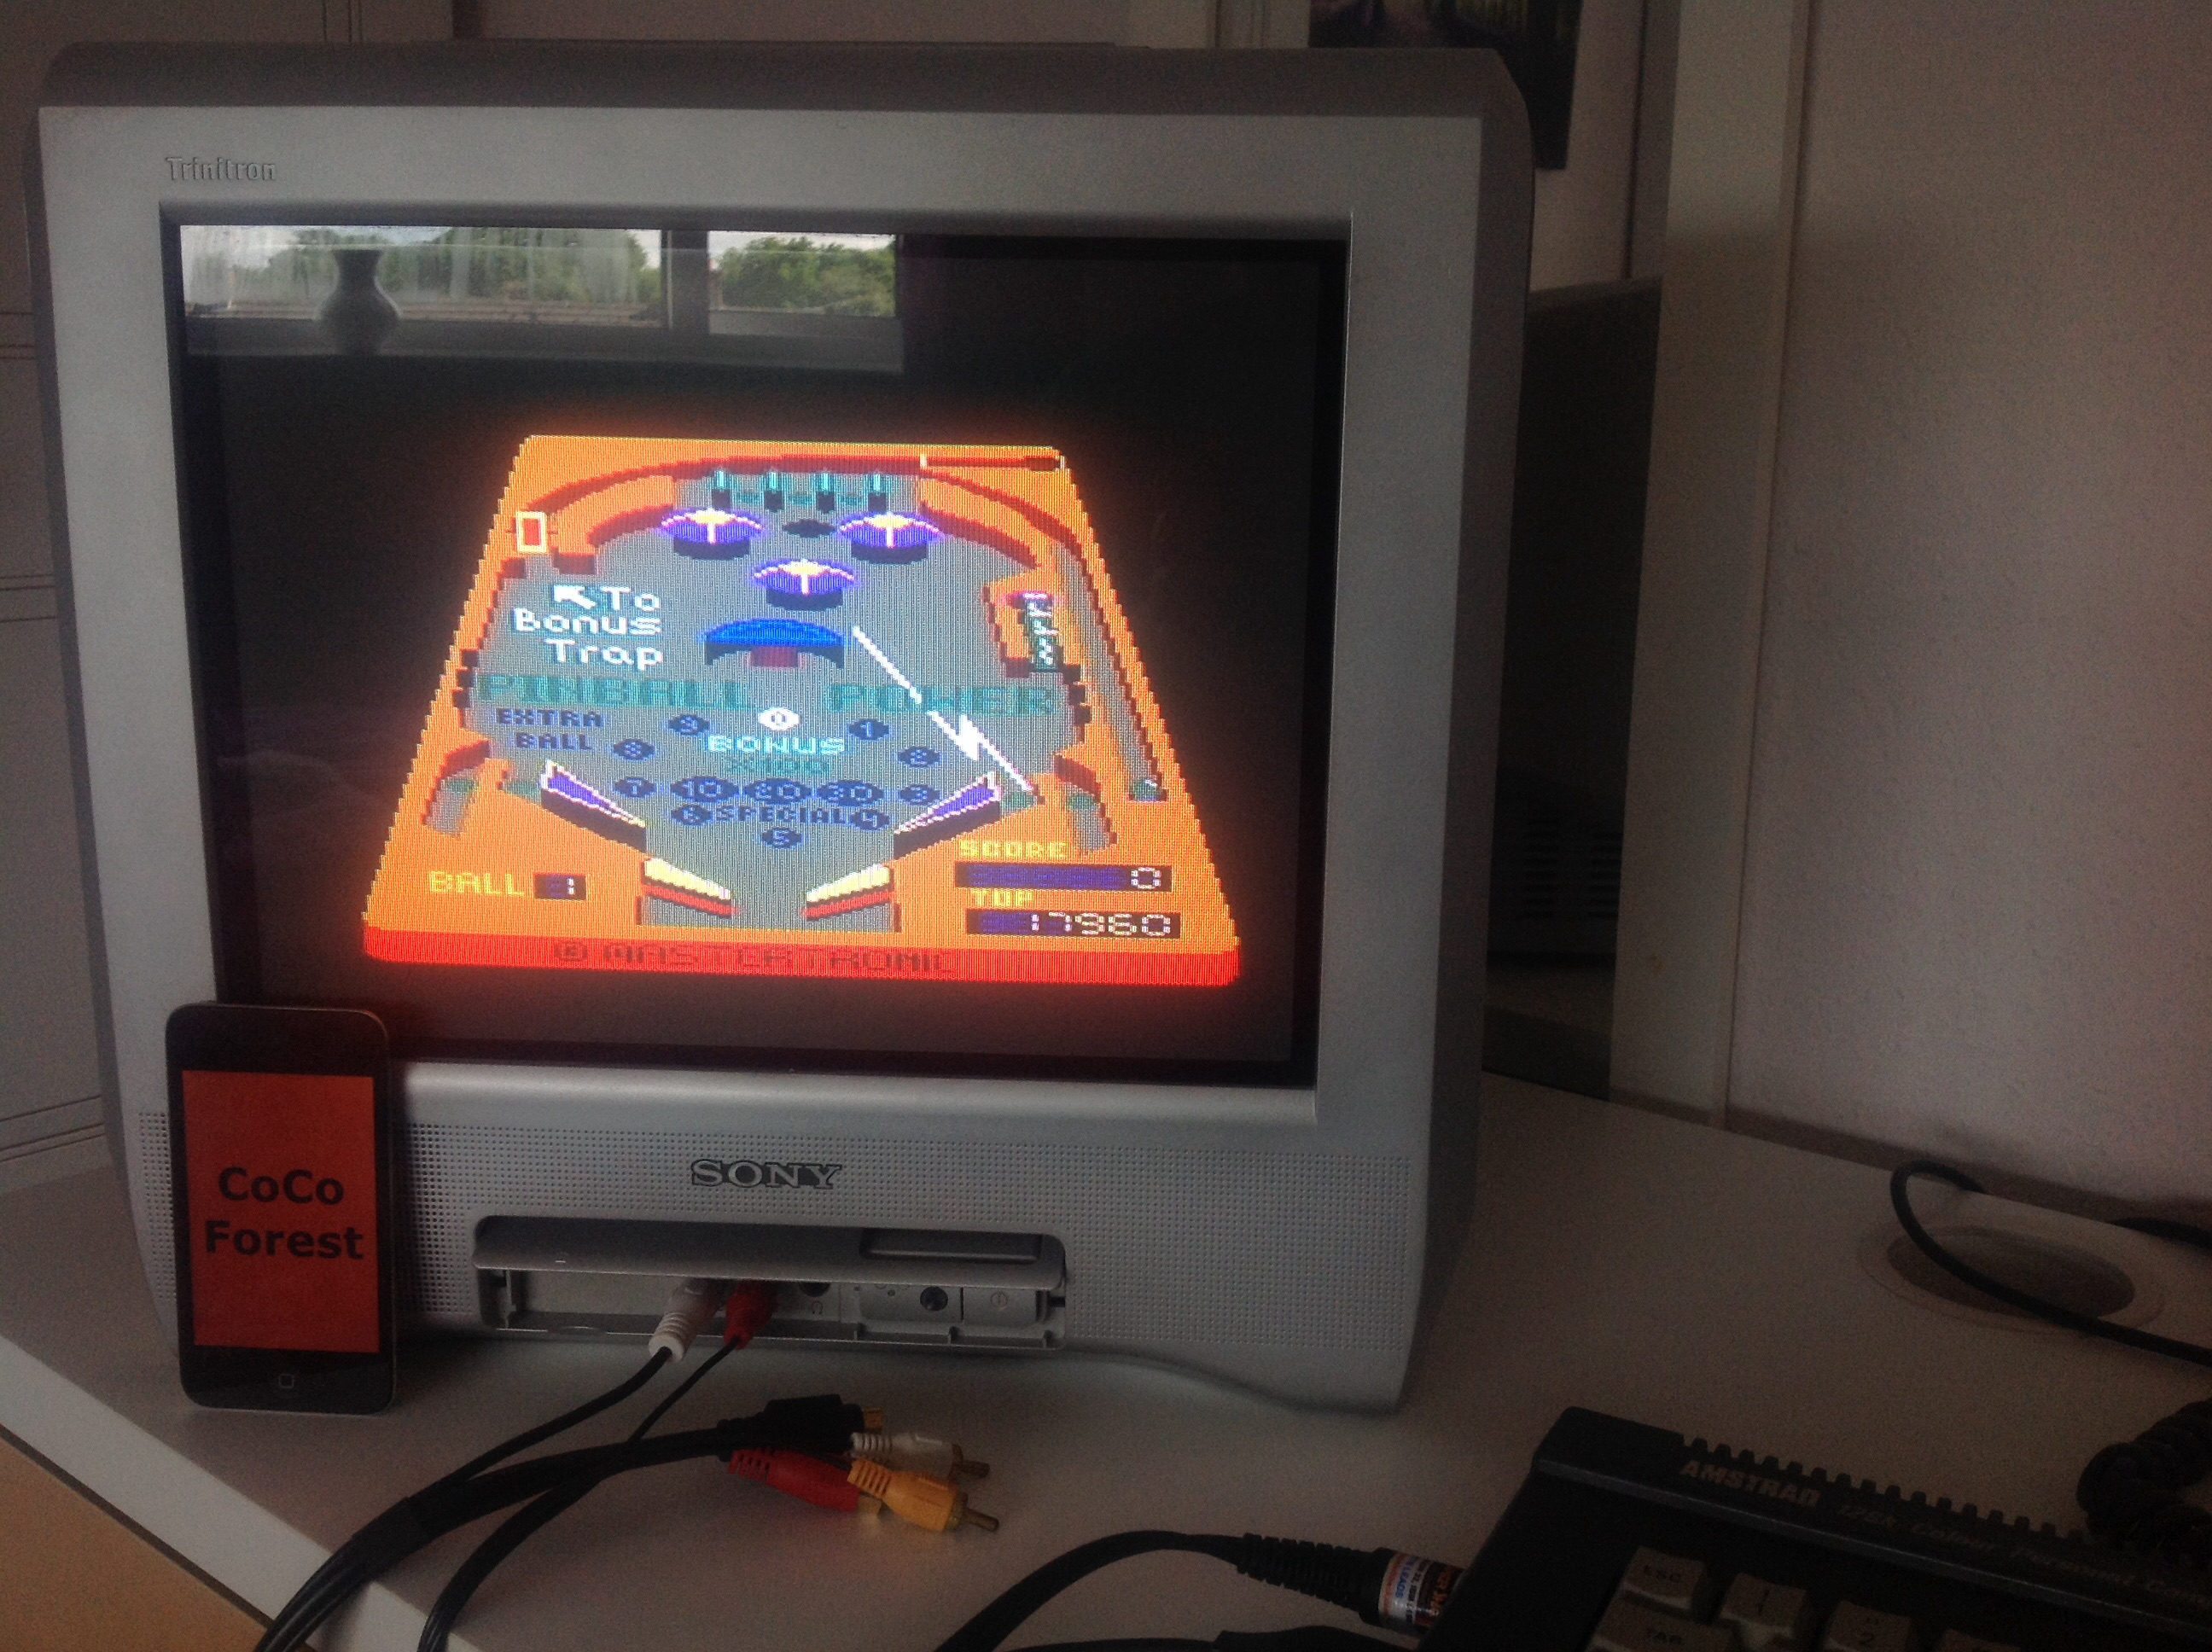 CoCoForest: 3D Pinball (Amstrad CPC) 17,960 points on 2015-06-07 04:30:22